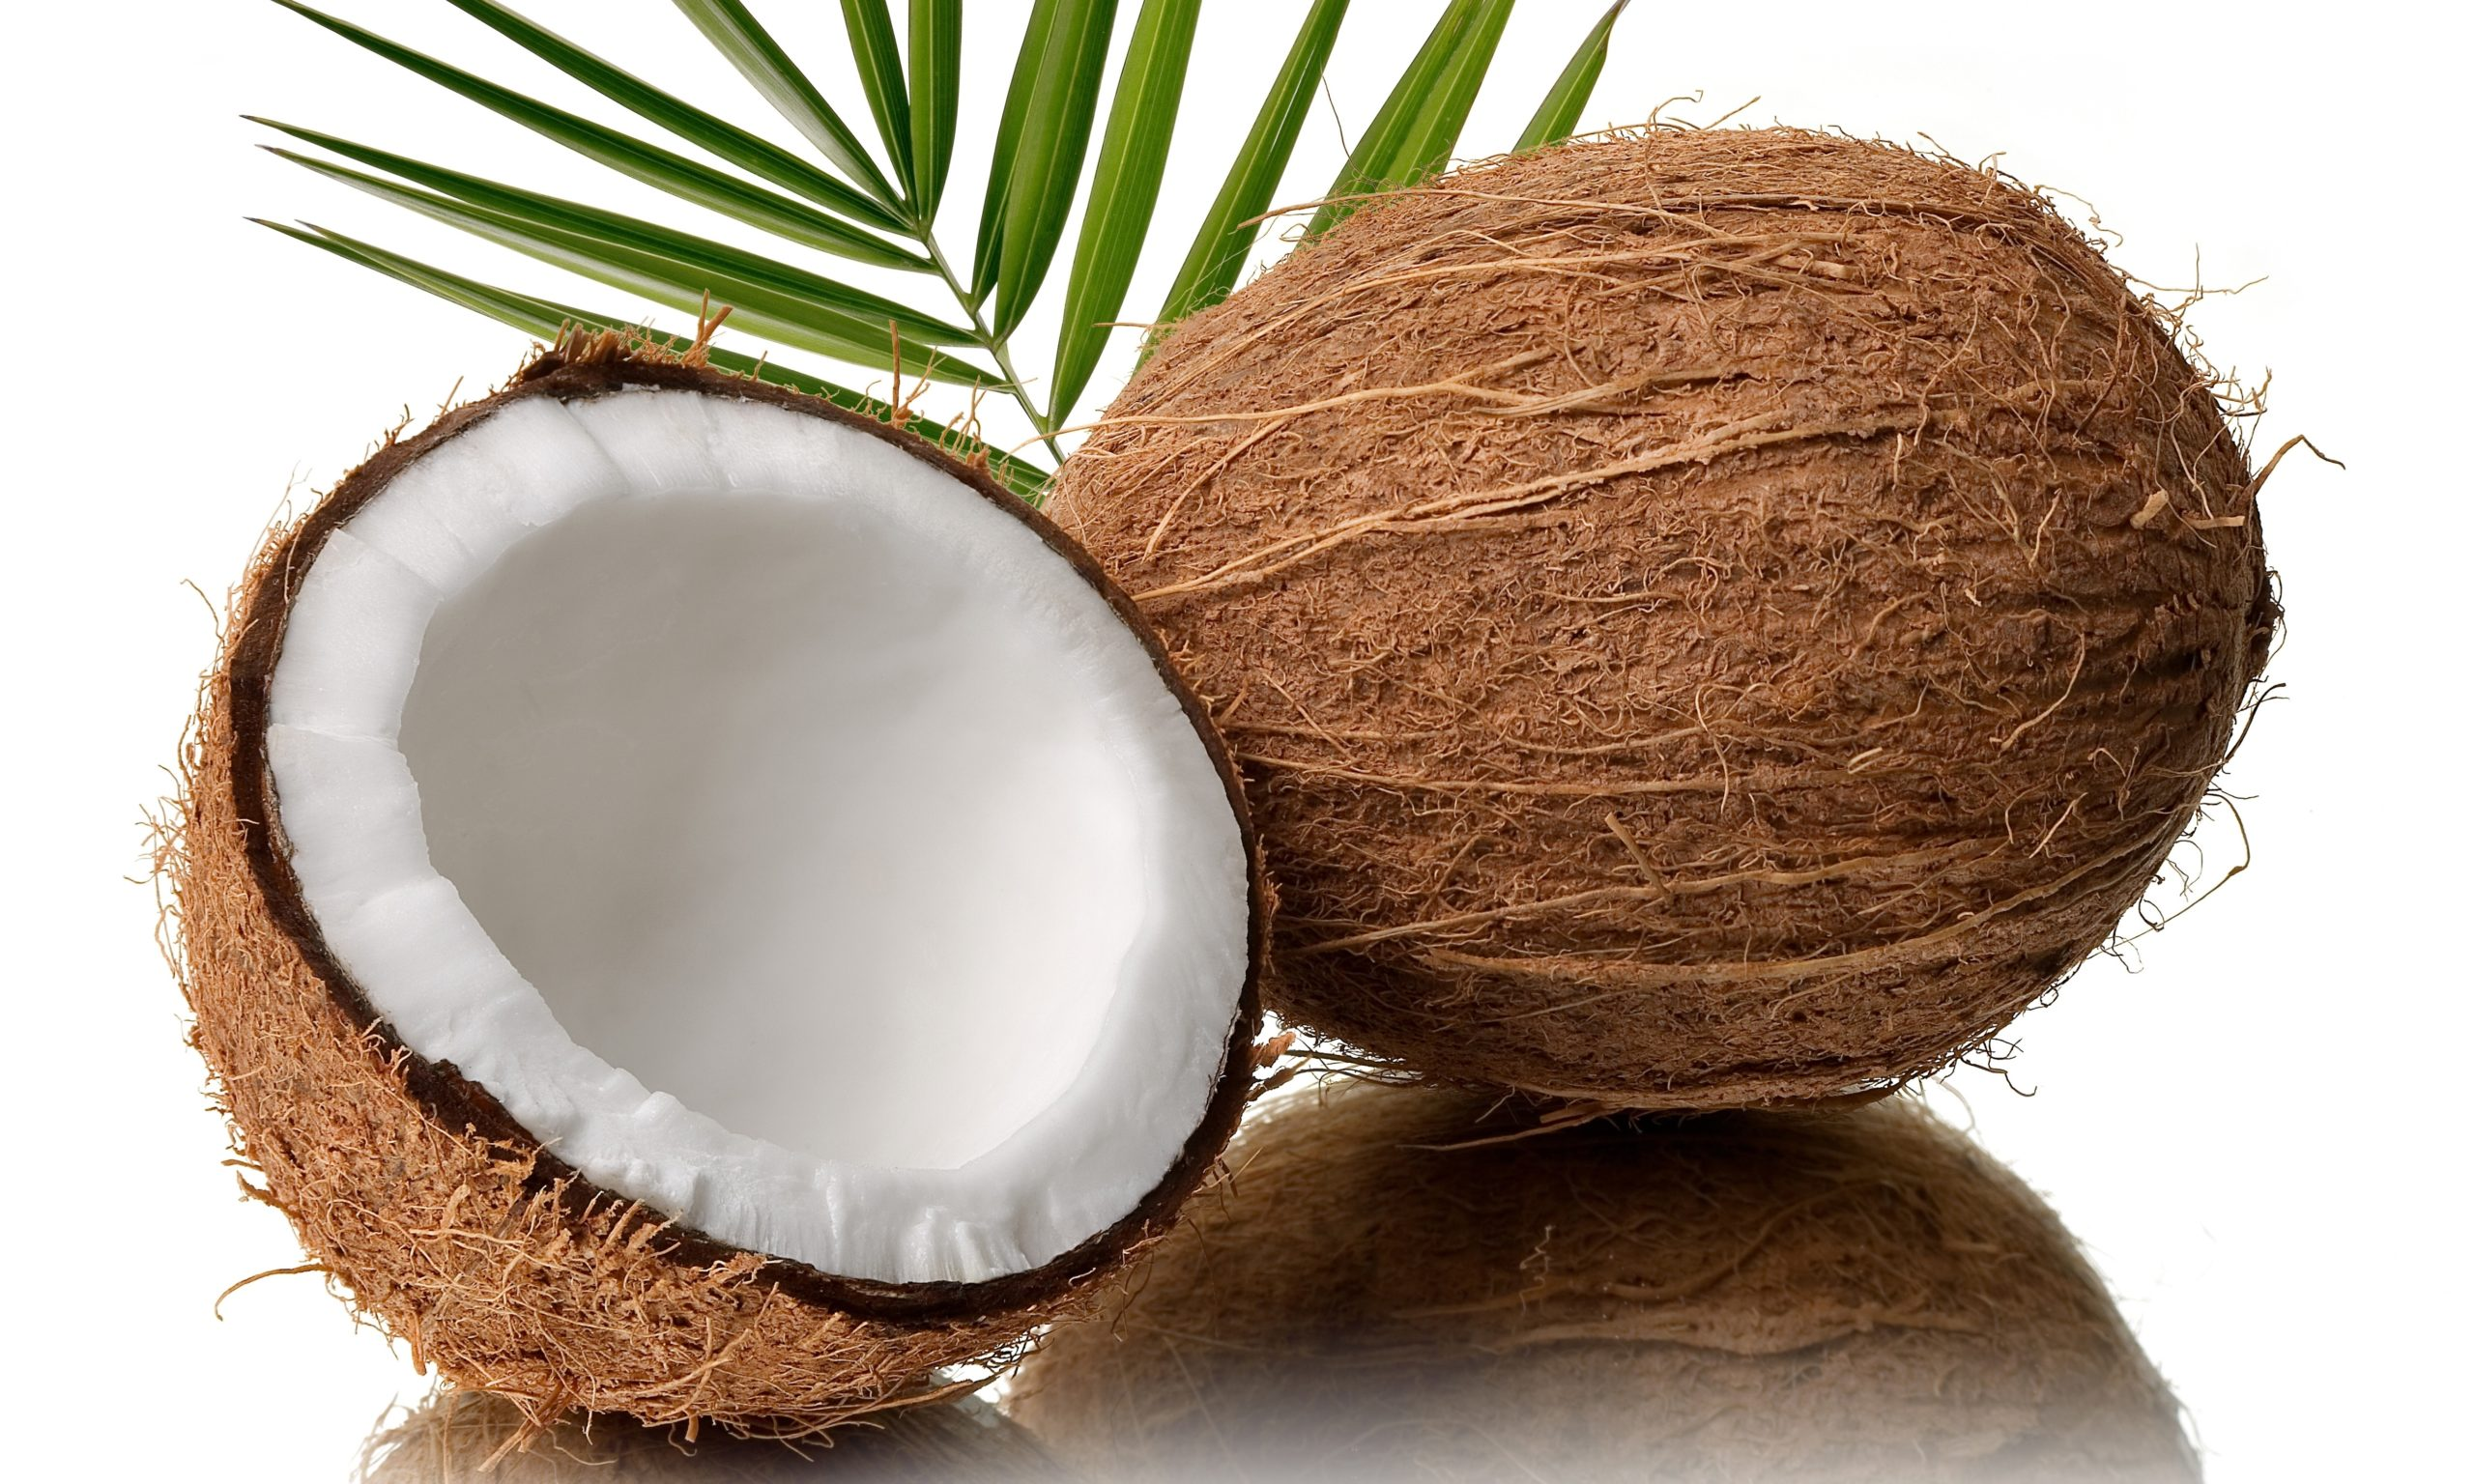 My coconut